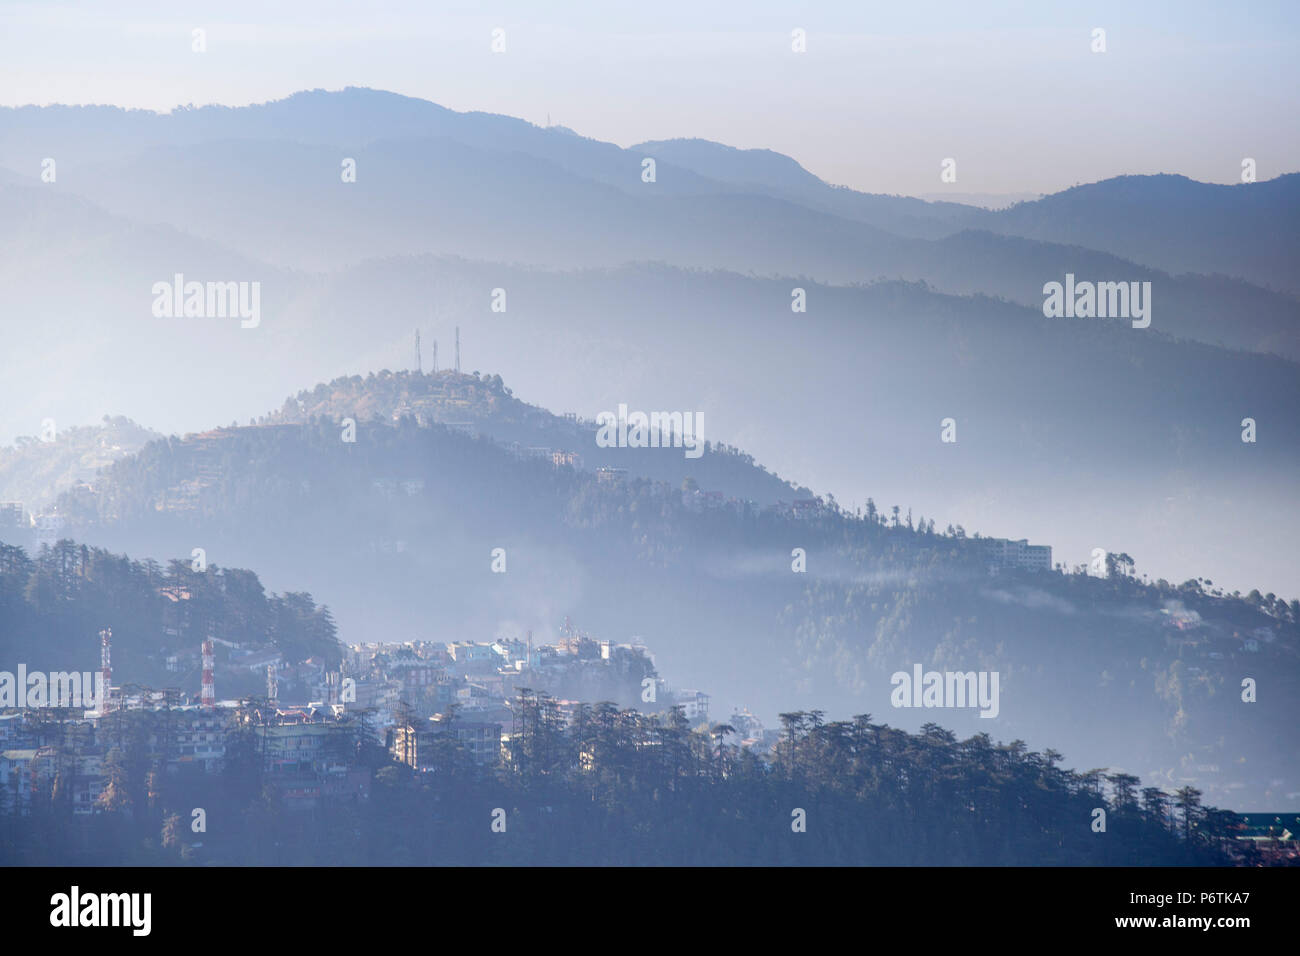 India, Himachal Pradesh, Shimla, View of mountains from The Ridge at dawn - Stock Image